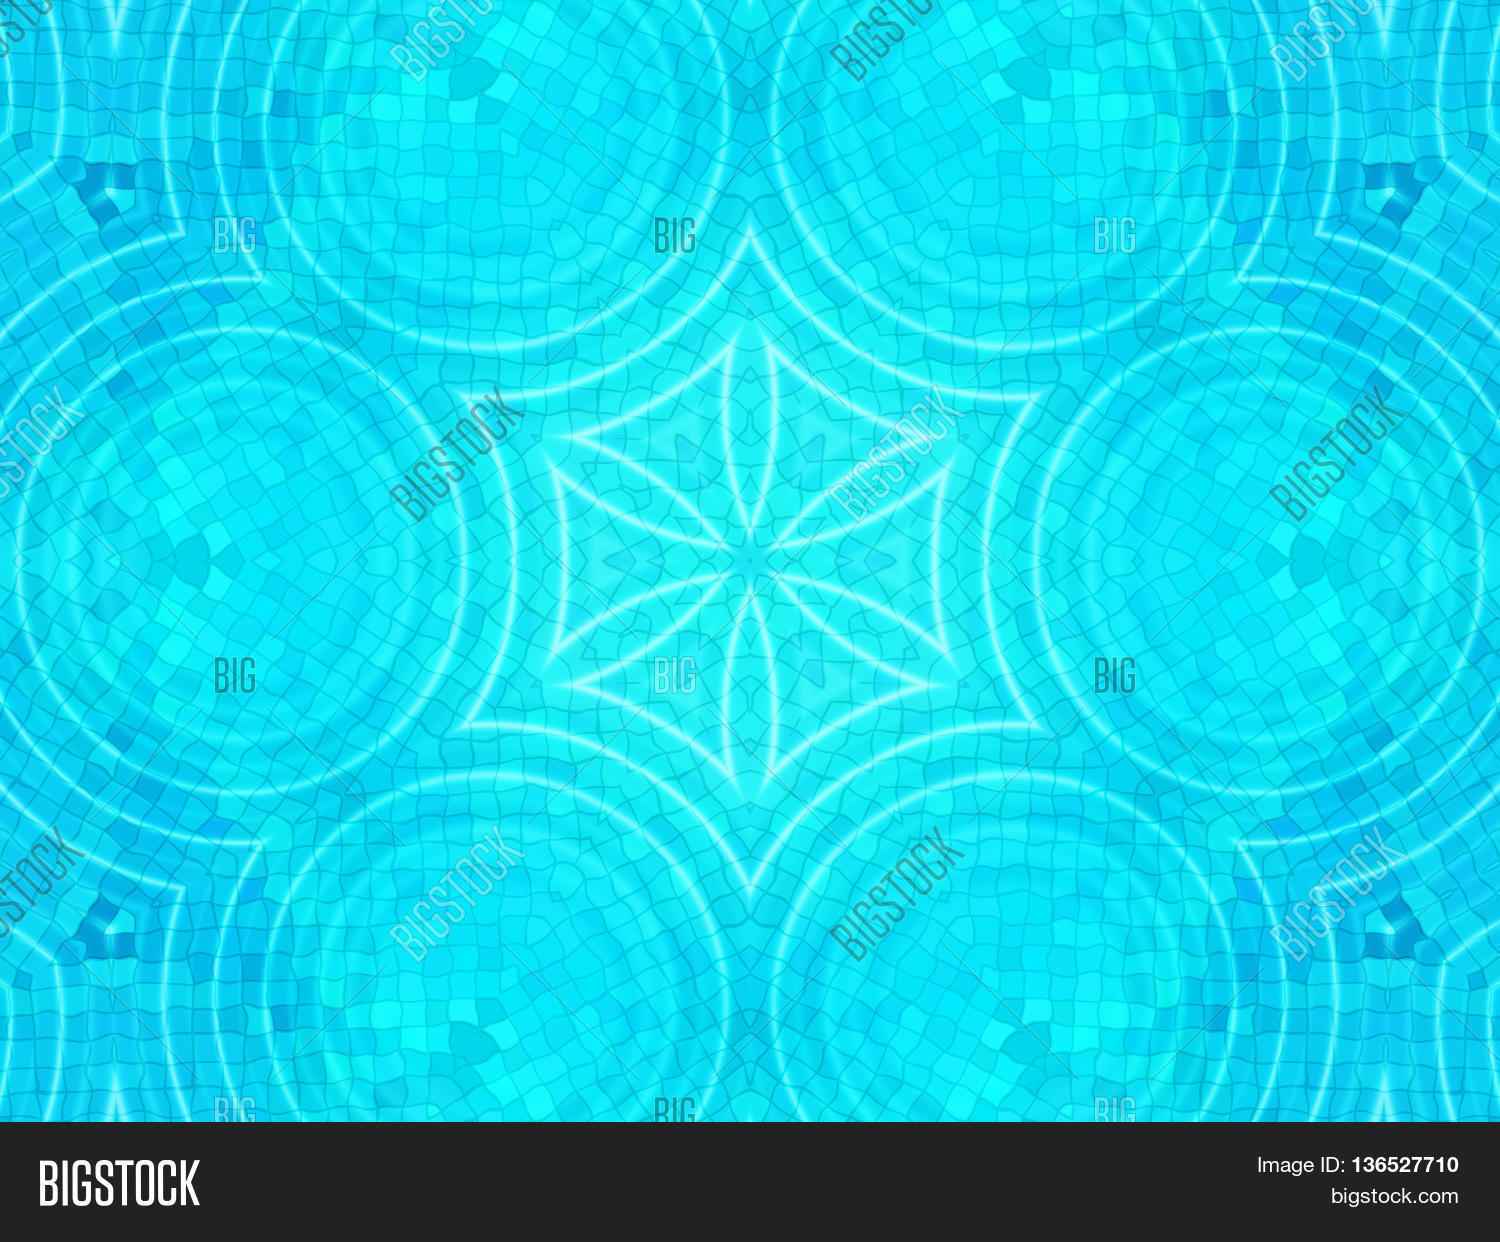 Bright blue tile background image photo bigstock Bright blue tile